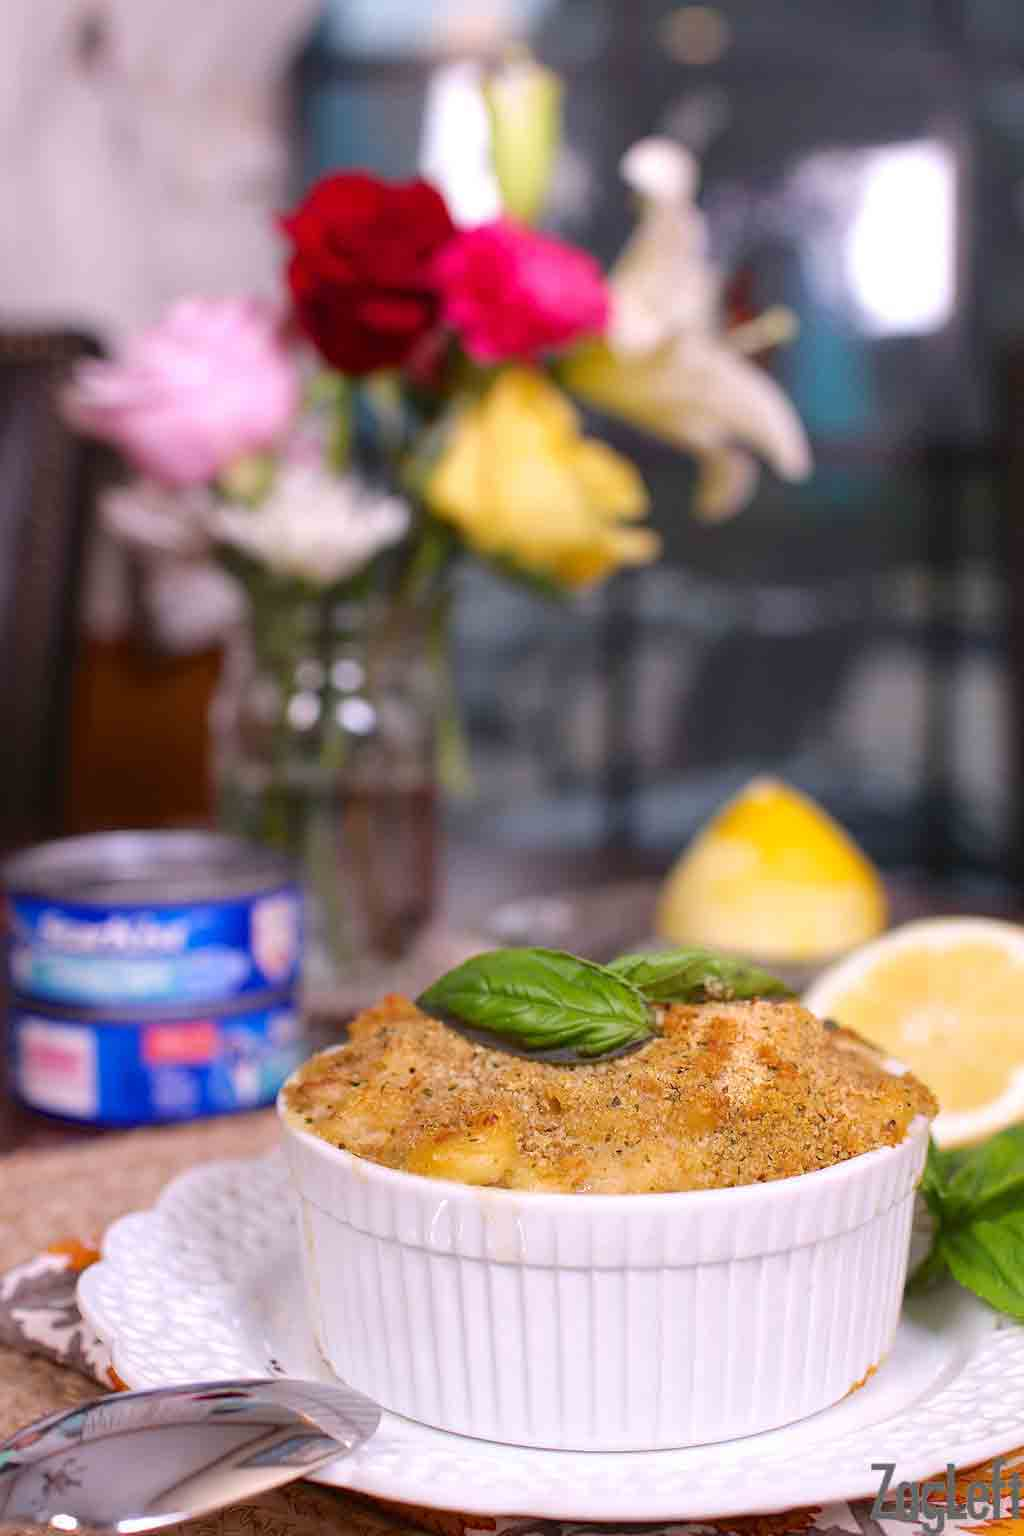 Tuna casserole in a small bowl on a wooden table with two cans of tuna and a vase of flowers in the background